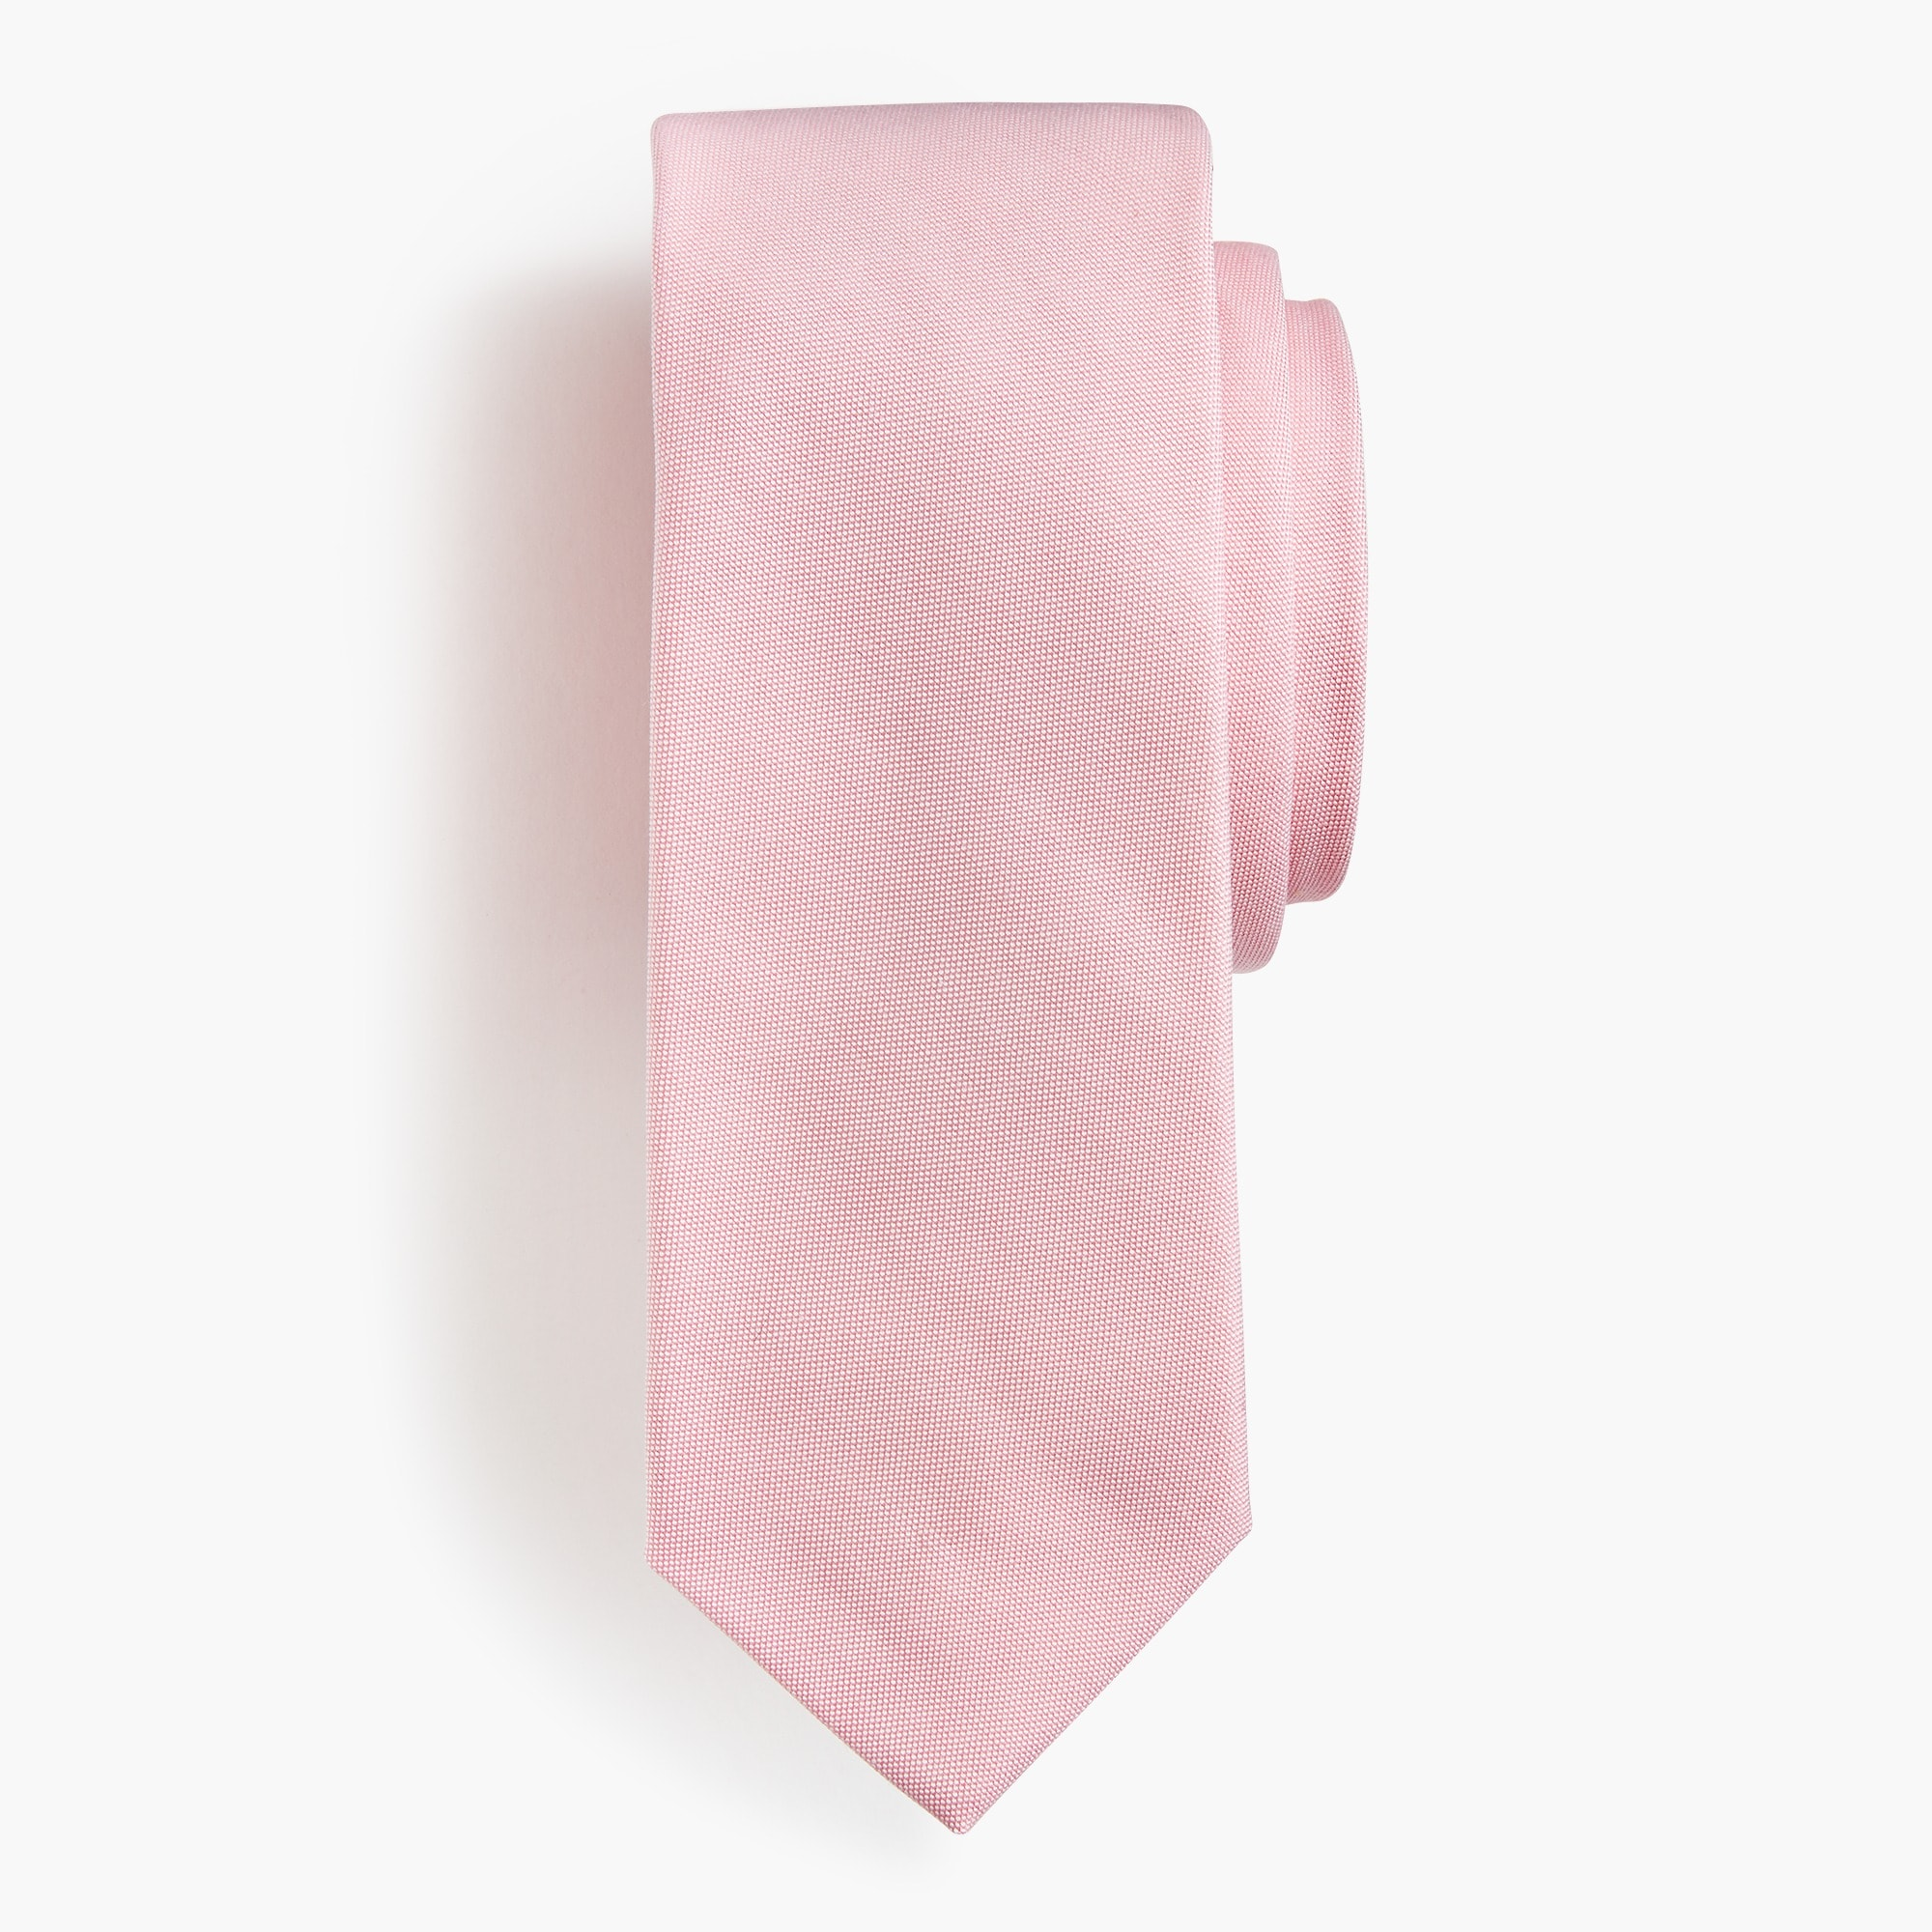 American Pima cotton oxford tie